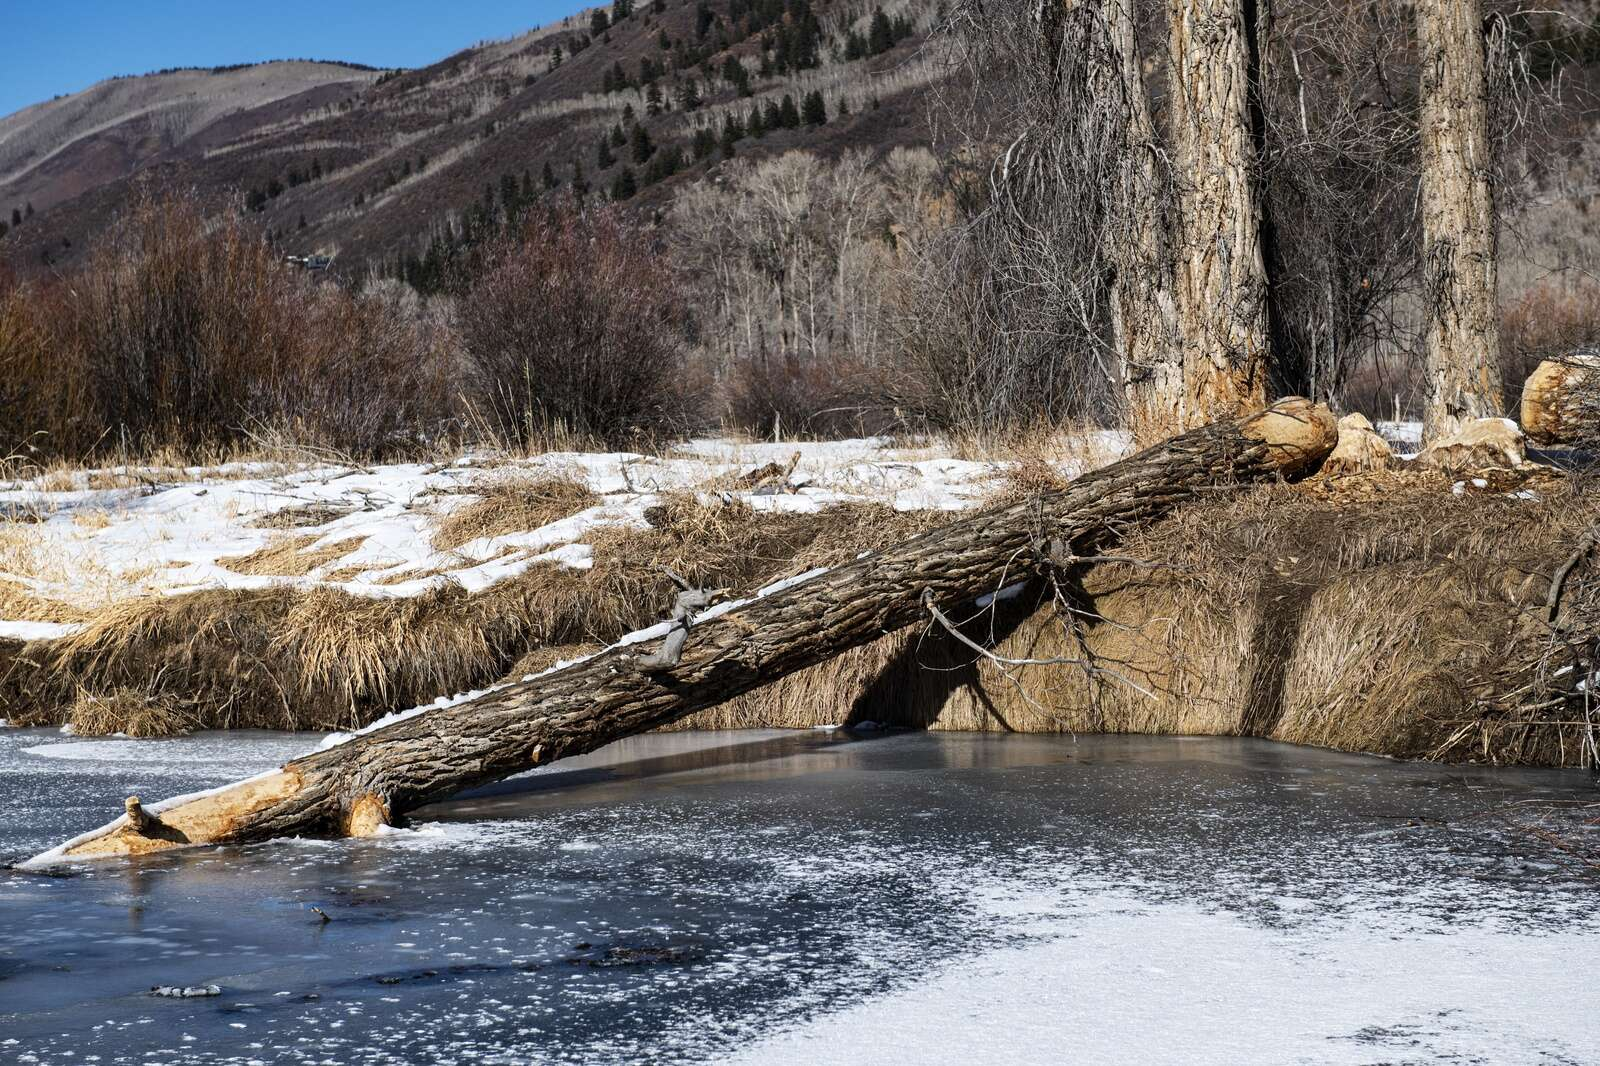 Evidence of beaver activity on Cottonwood Trees in Northstar Nature Preserve on Friday, Dec. 4, 2020. The branches under the water were stripped clean of bark, having been used as a food source for the beavers. (Kelsey Brunner/The Aspen Times)